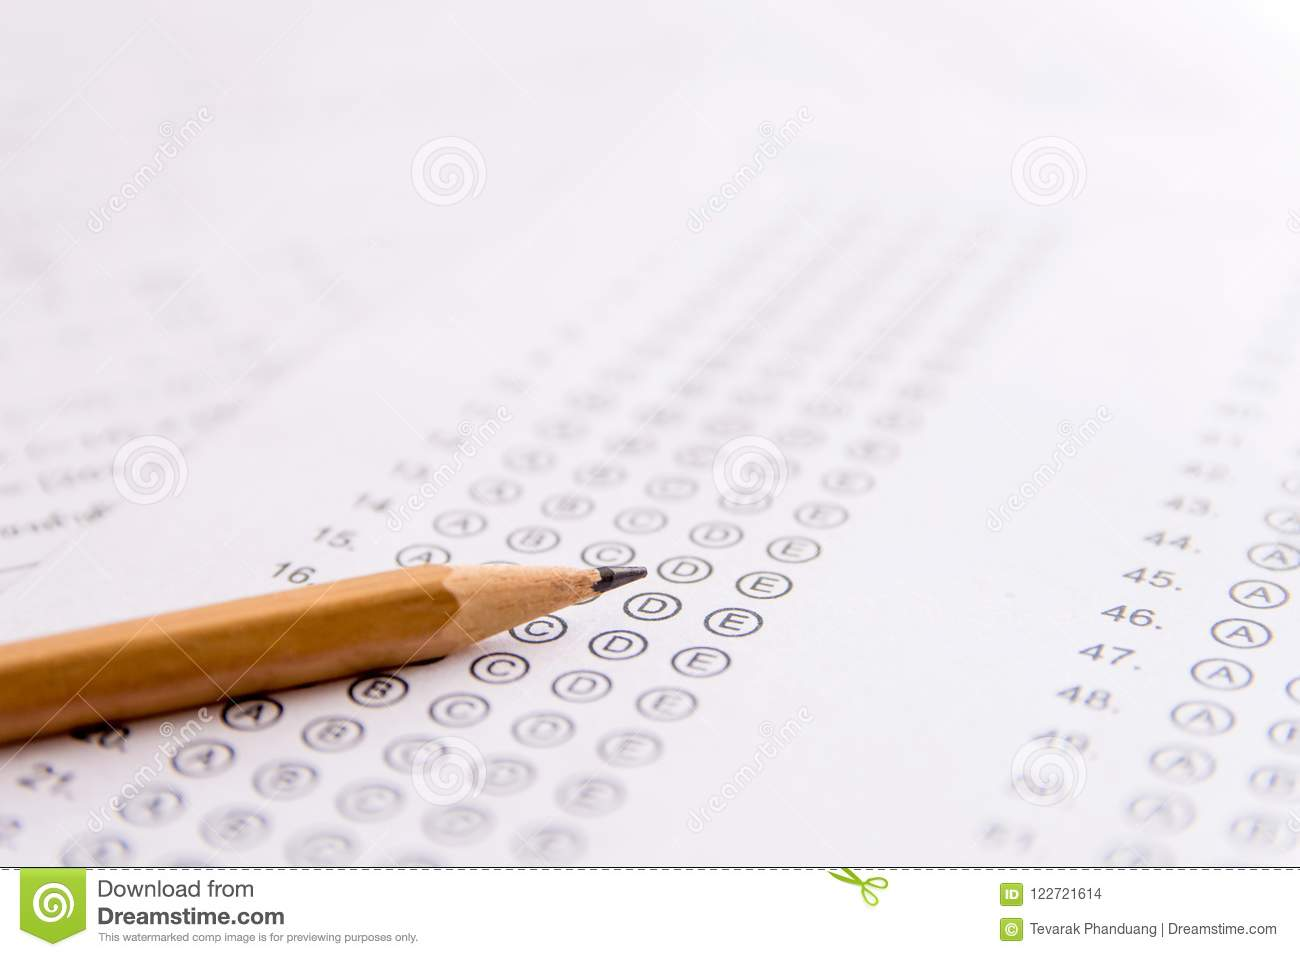 Pencil on answer sheets or Standardized test form with answers b